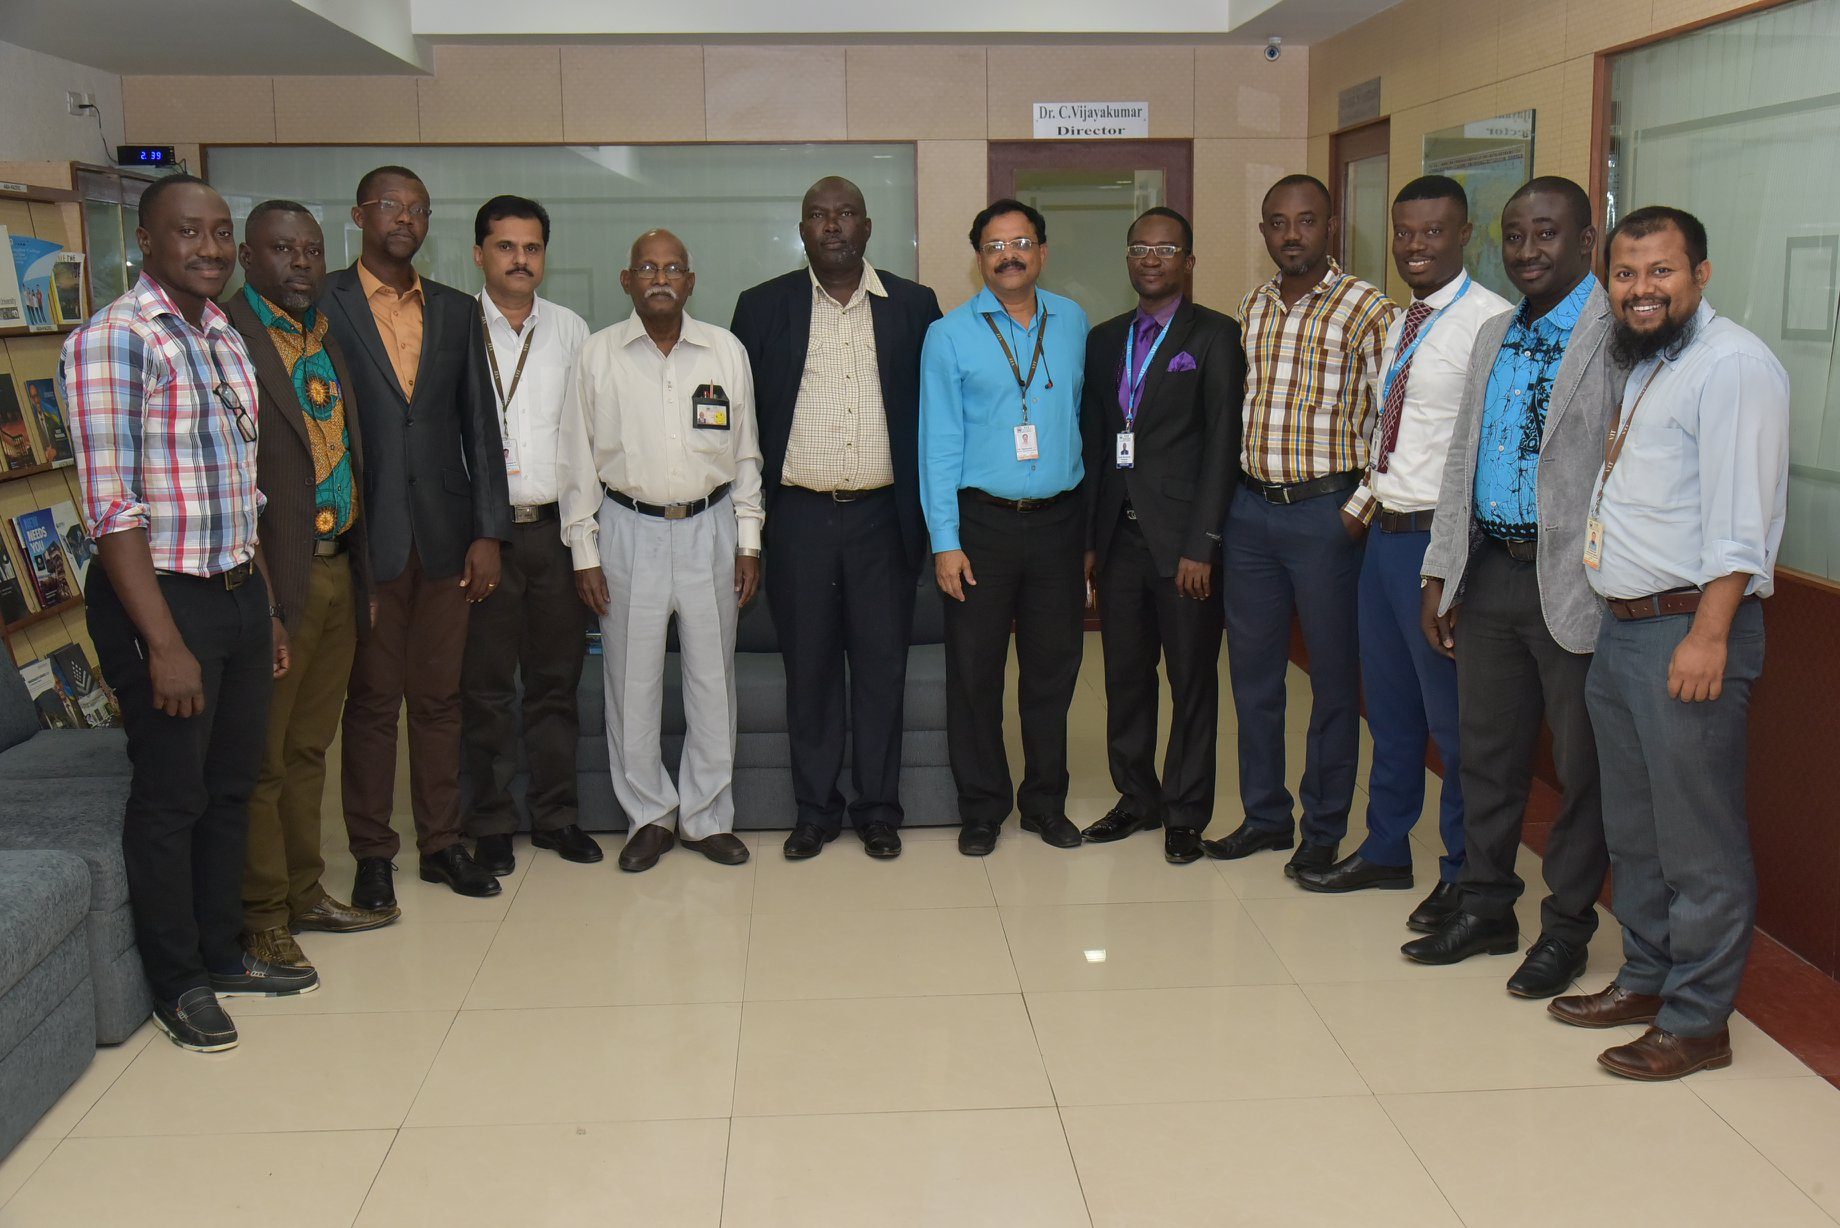 Ph.D candidates from Ghana